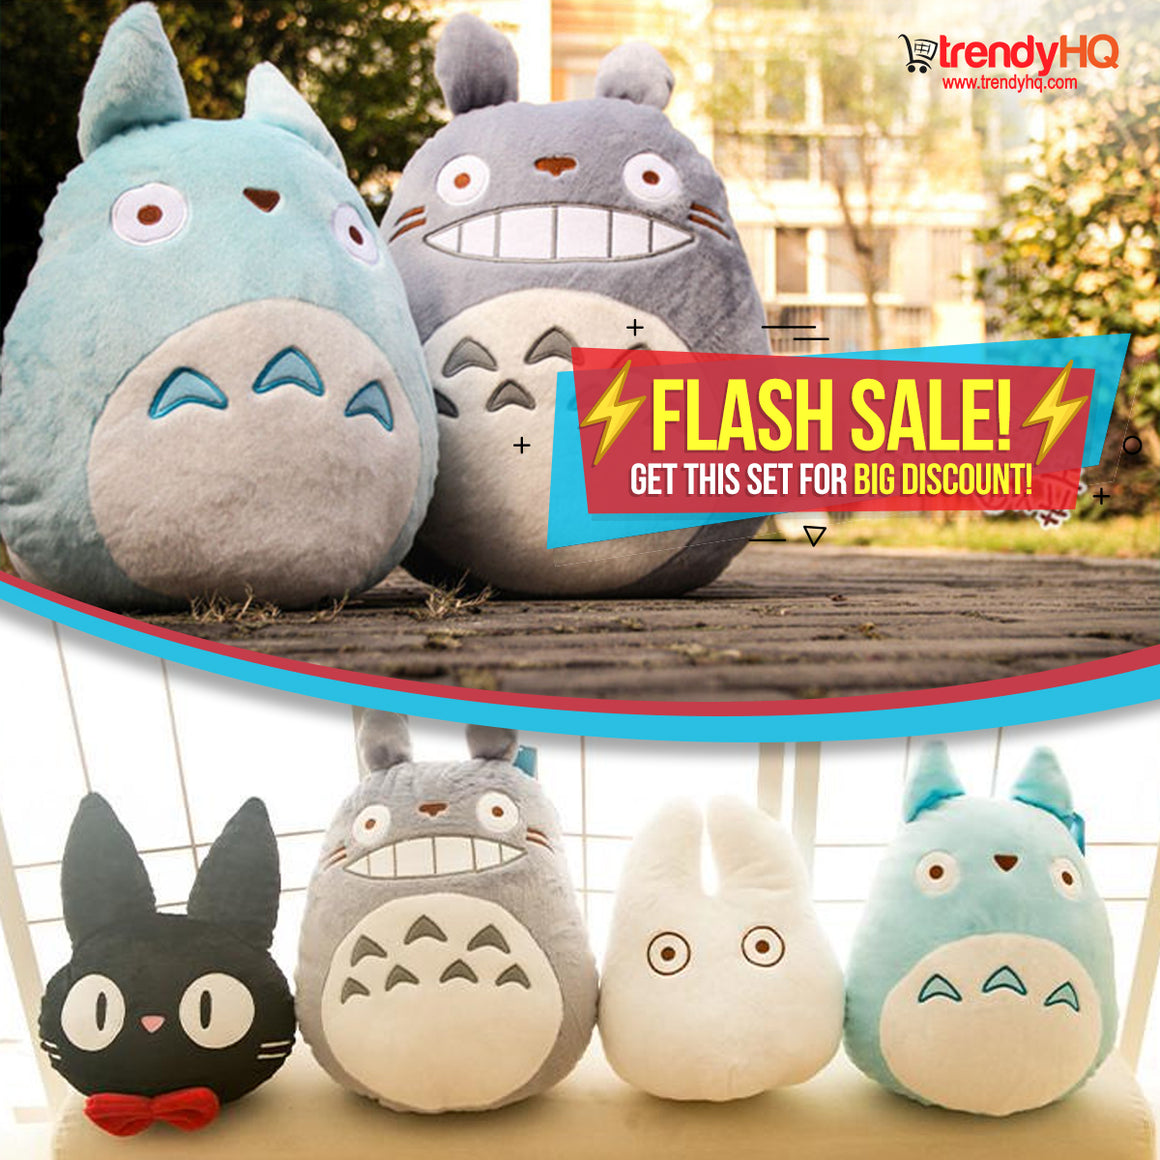 Soft & Cuddly Totoro Plush Set